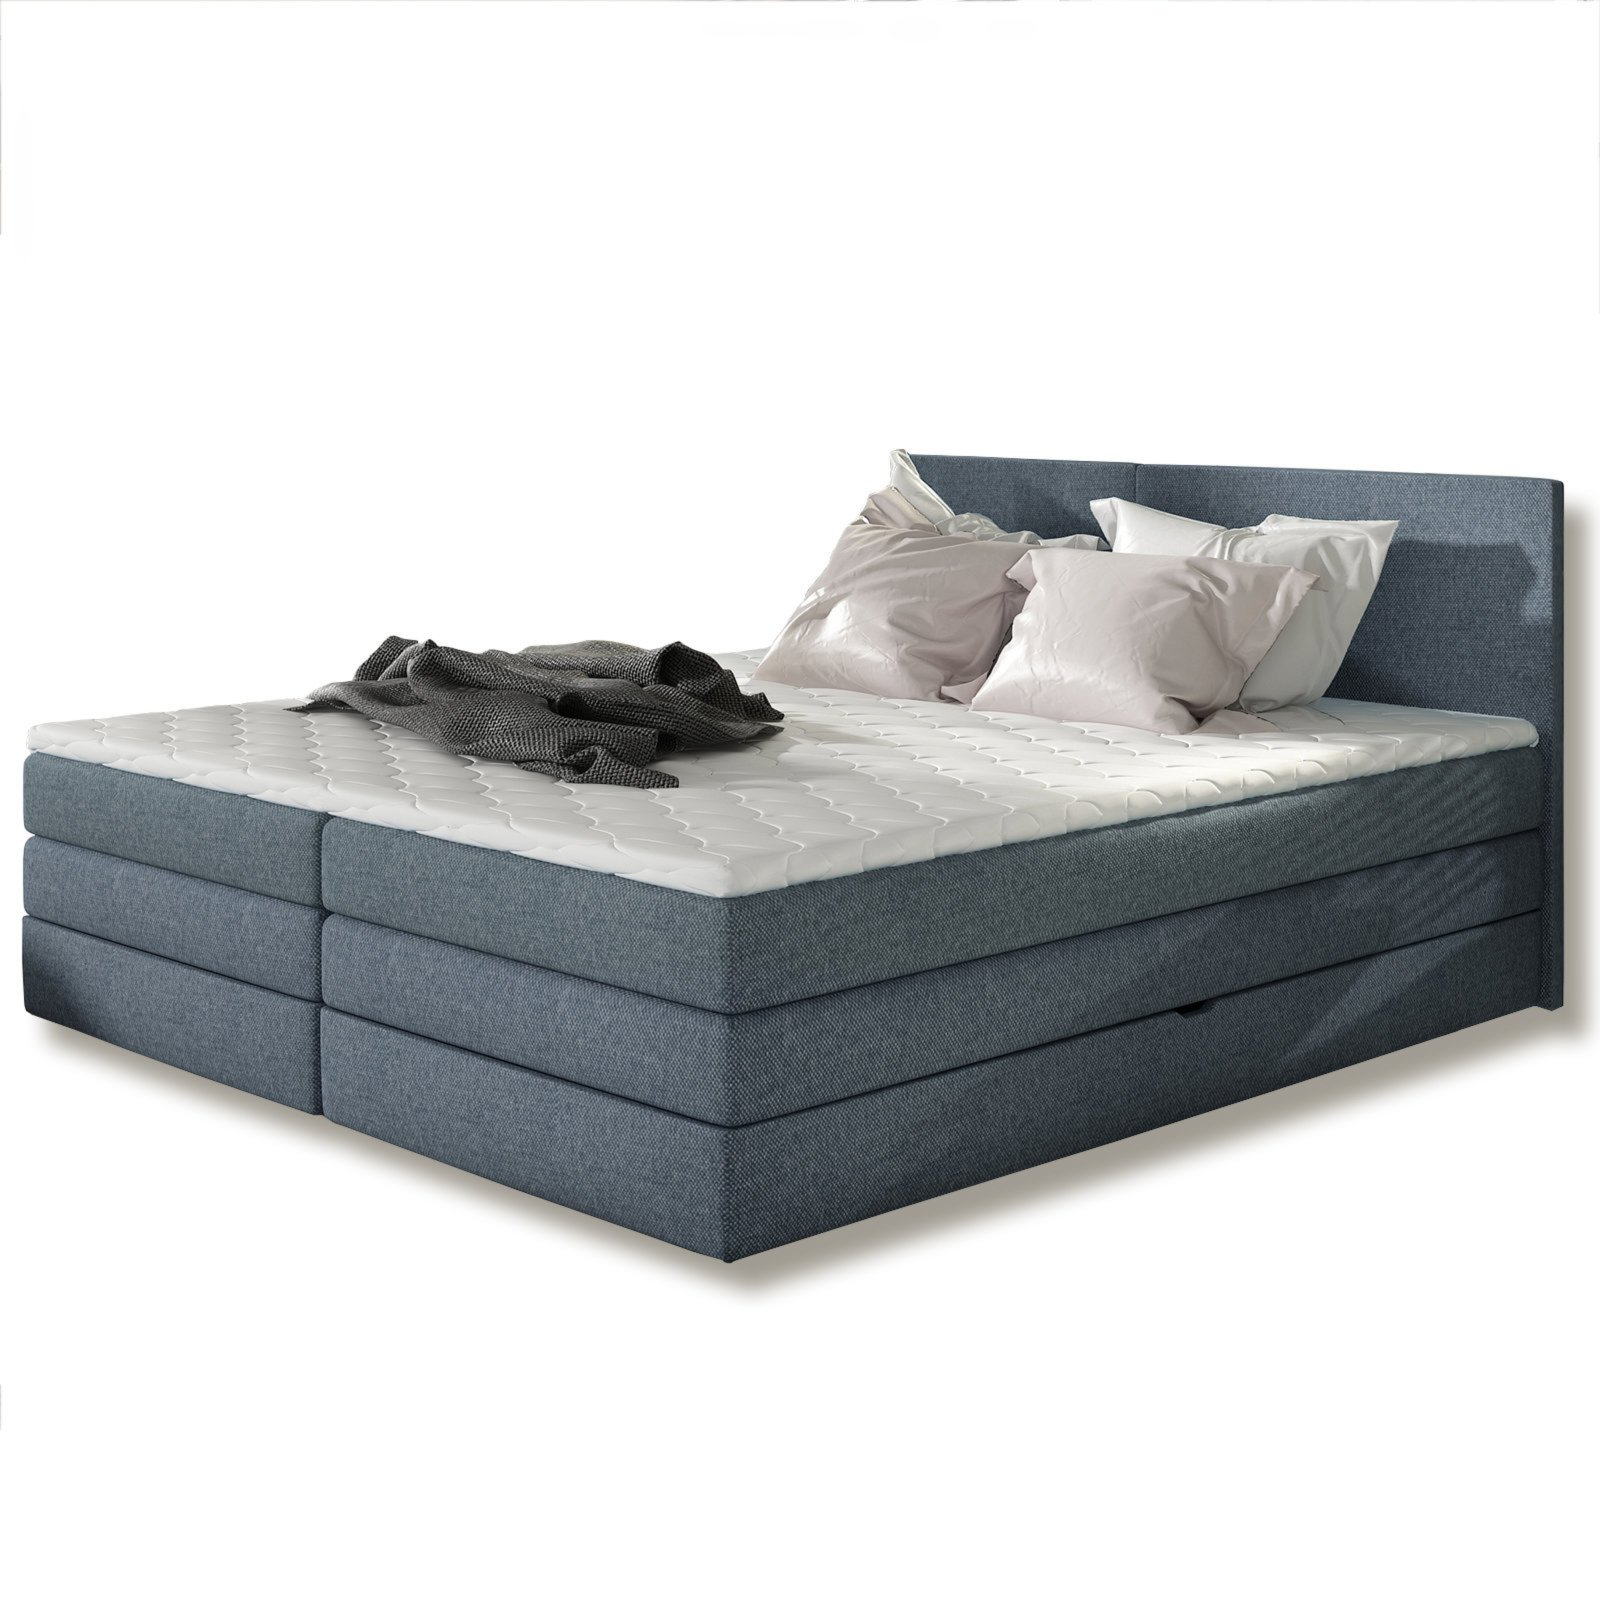 boxspringbett hanza jeansblau h2 180x200 cm boxspringbetten betten m bel roller. Black Bedroom Furniture Sets. Home Design Ideas